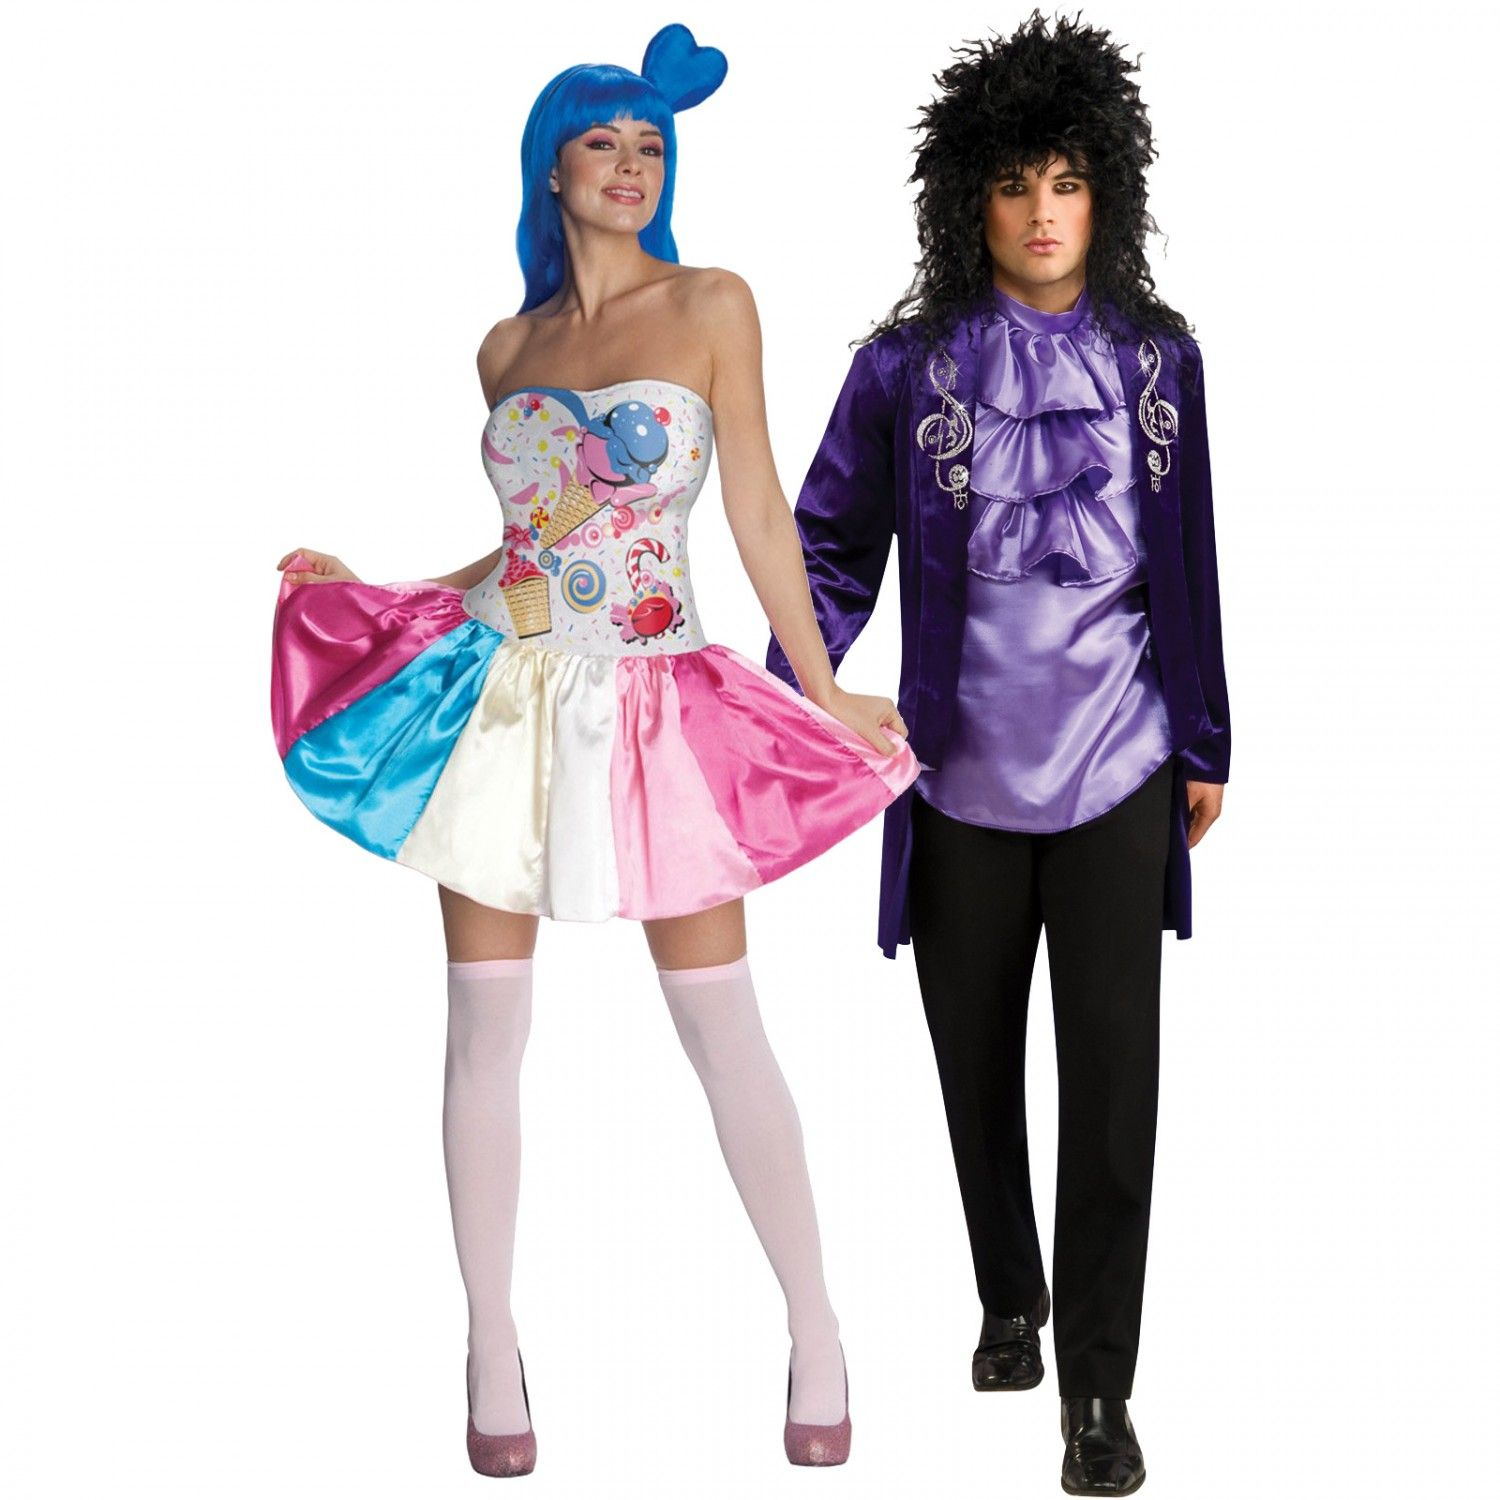 Katy Perry Candy Girl and Royal Rocker Couples Costume Image ...